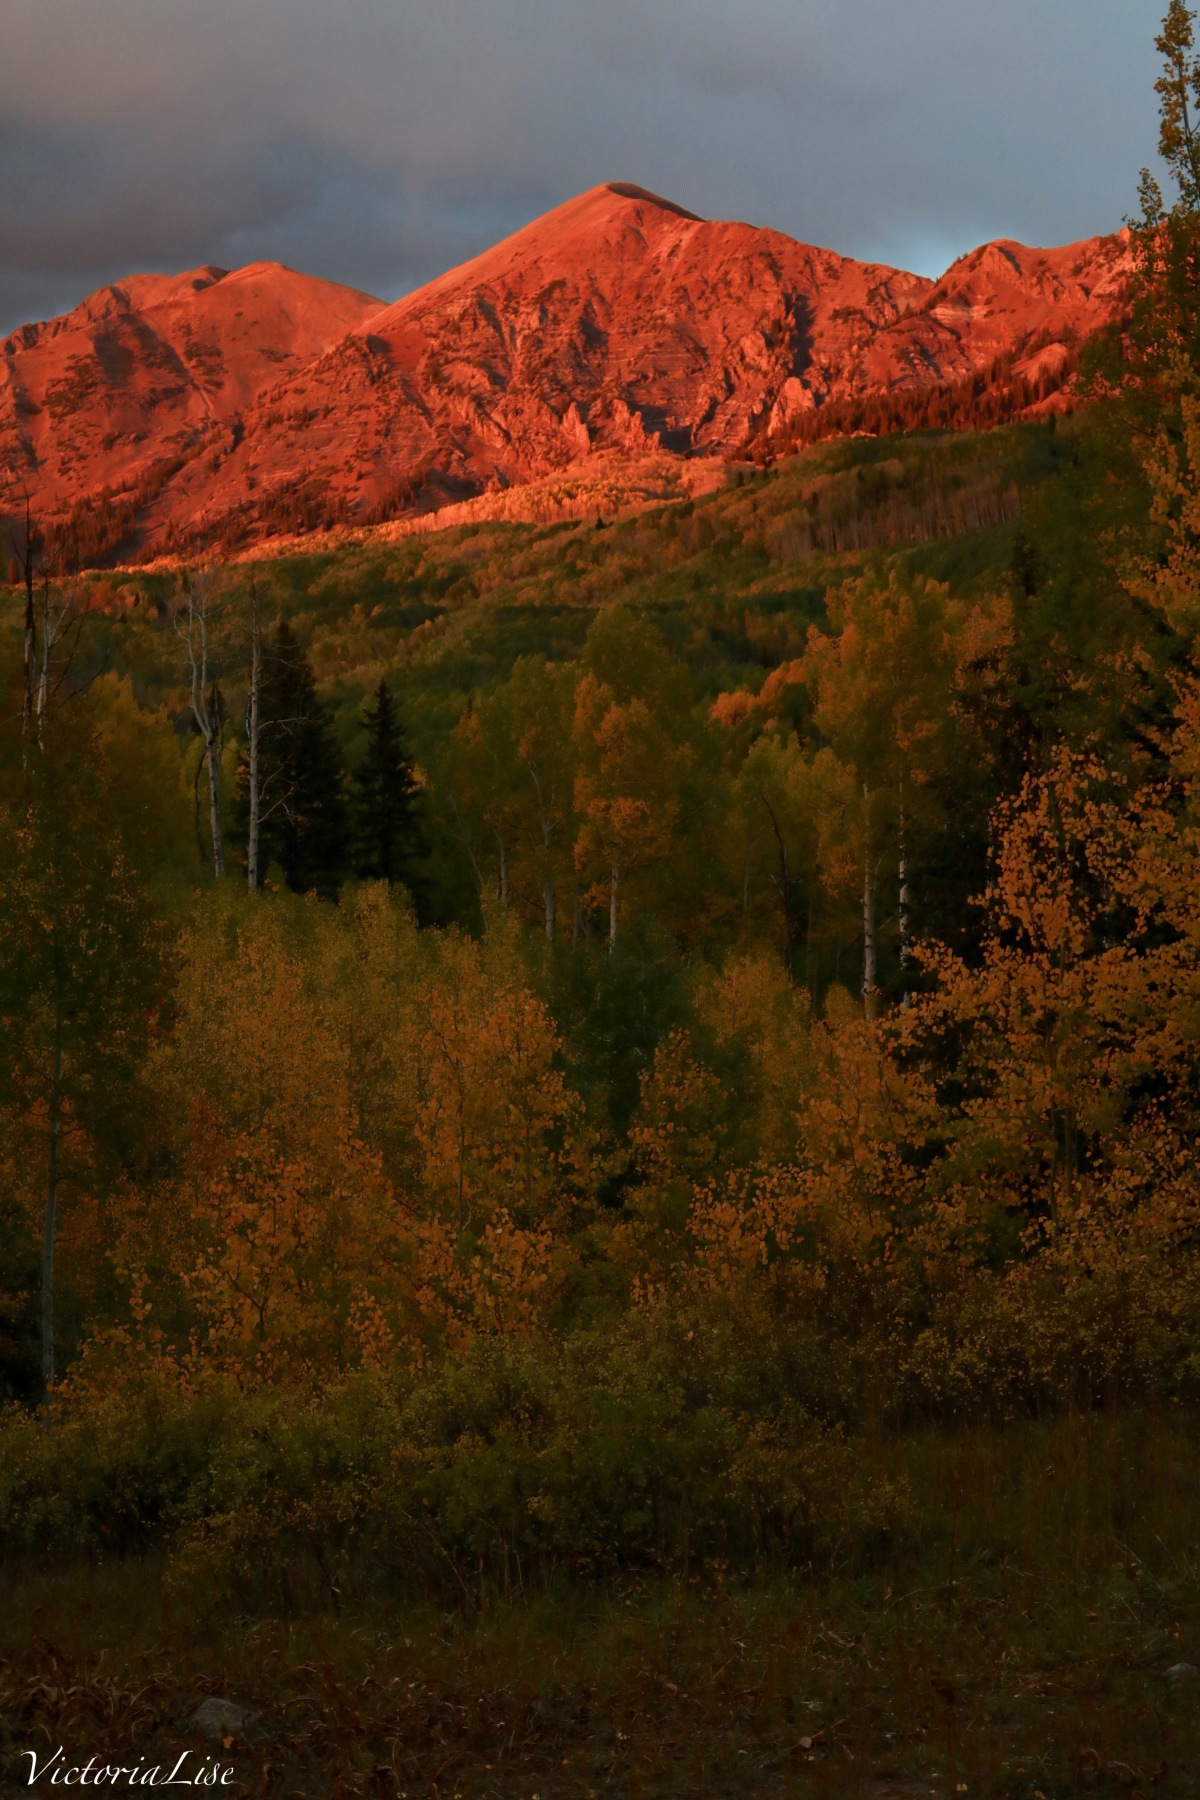 Autumnal Alpenglow caressing one of Colorado's peaks. ©Victoria Lise 2018.